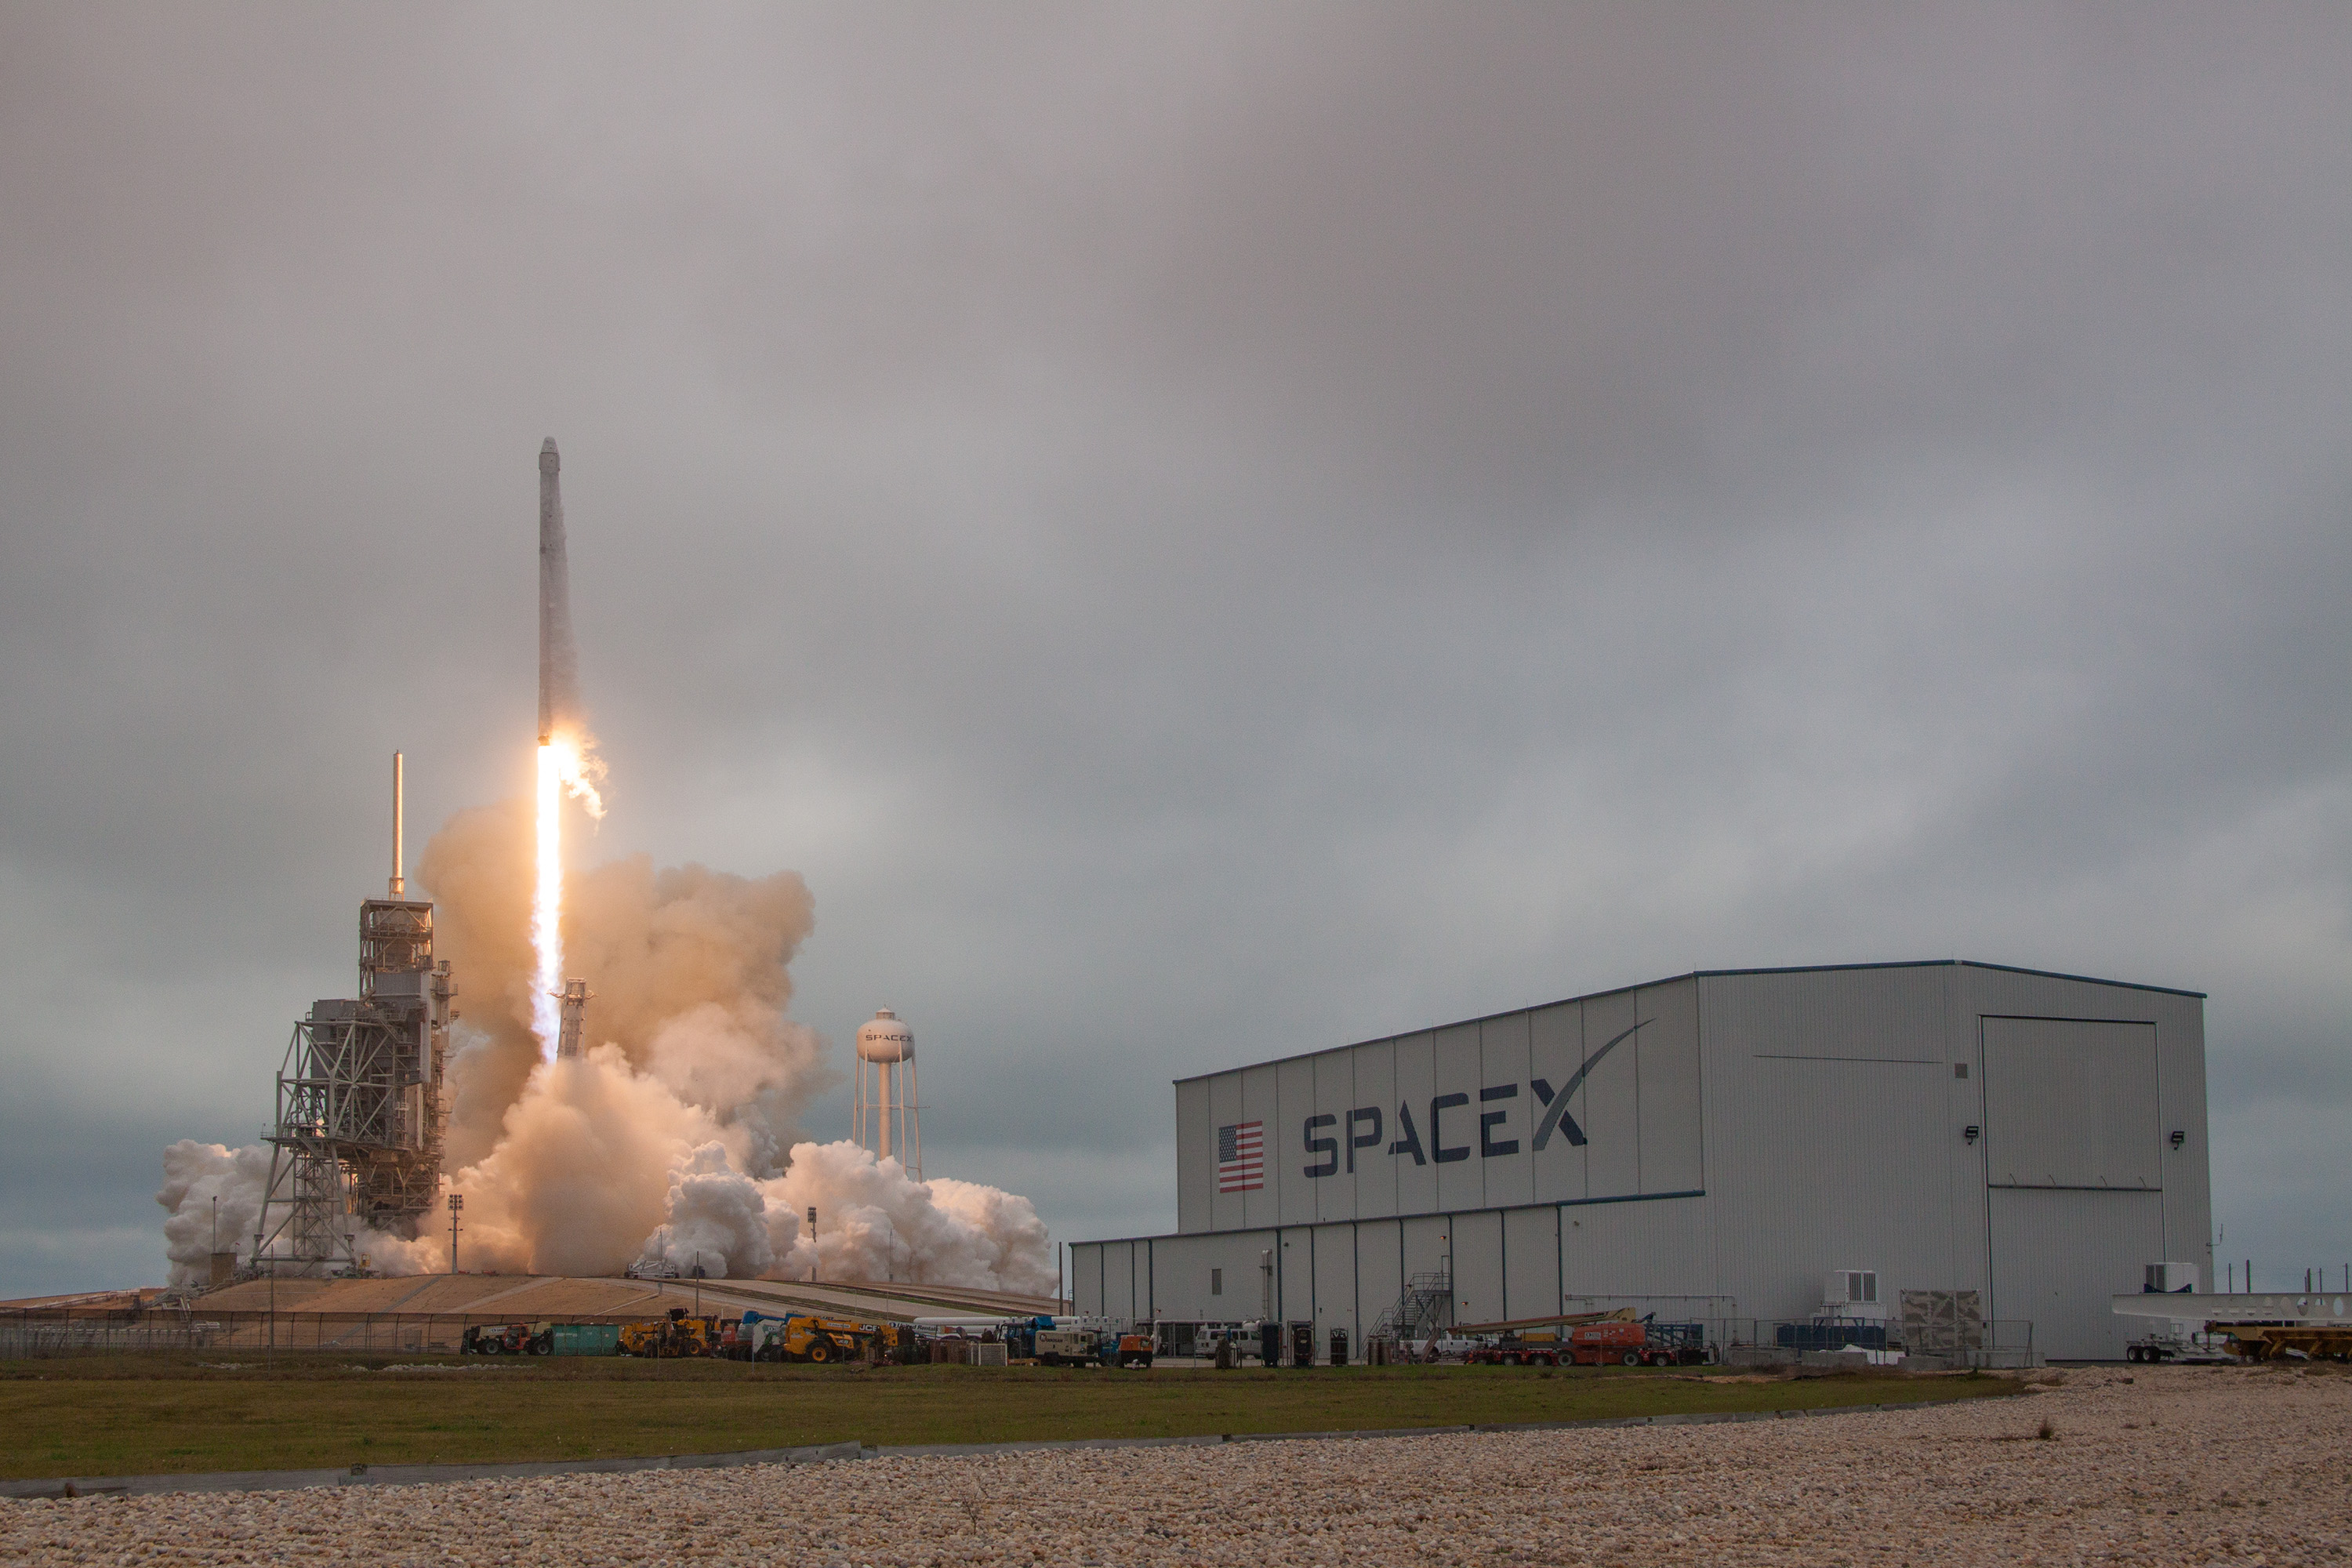 SpaceX launches rocket after delay